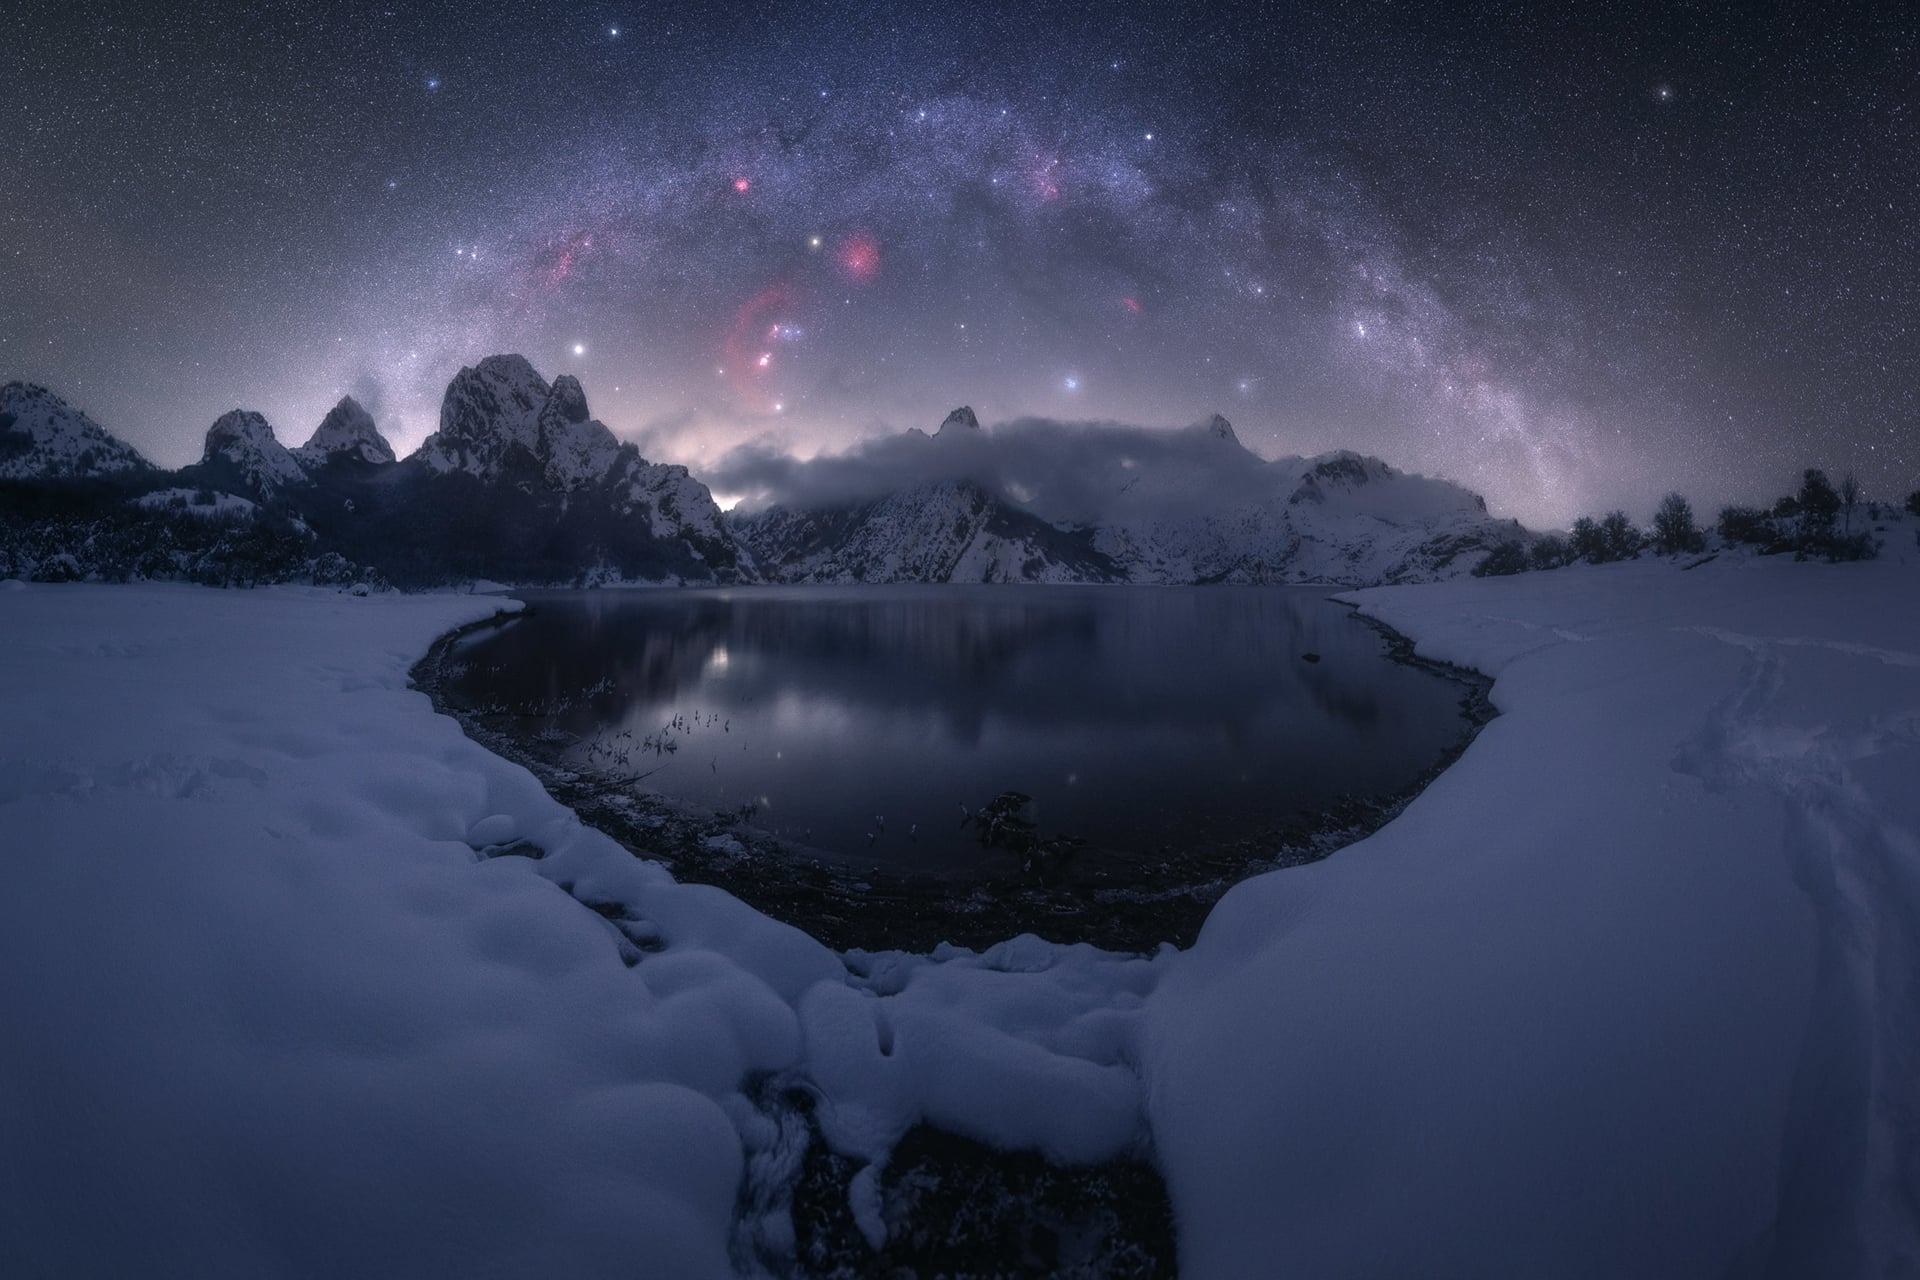 Milky Way photographer of the year Spain